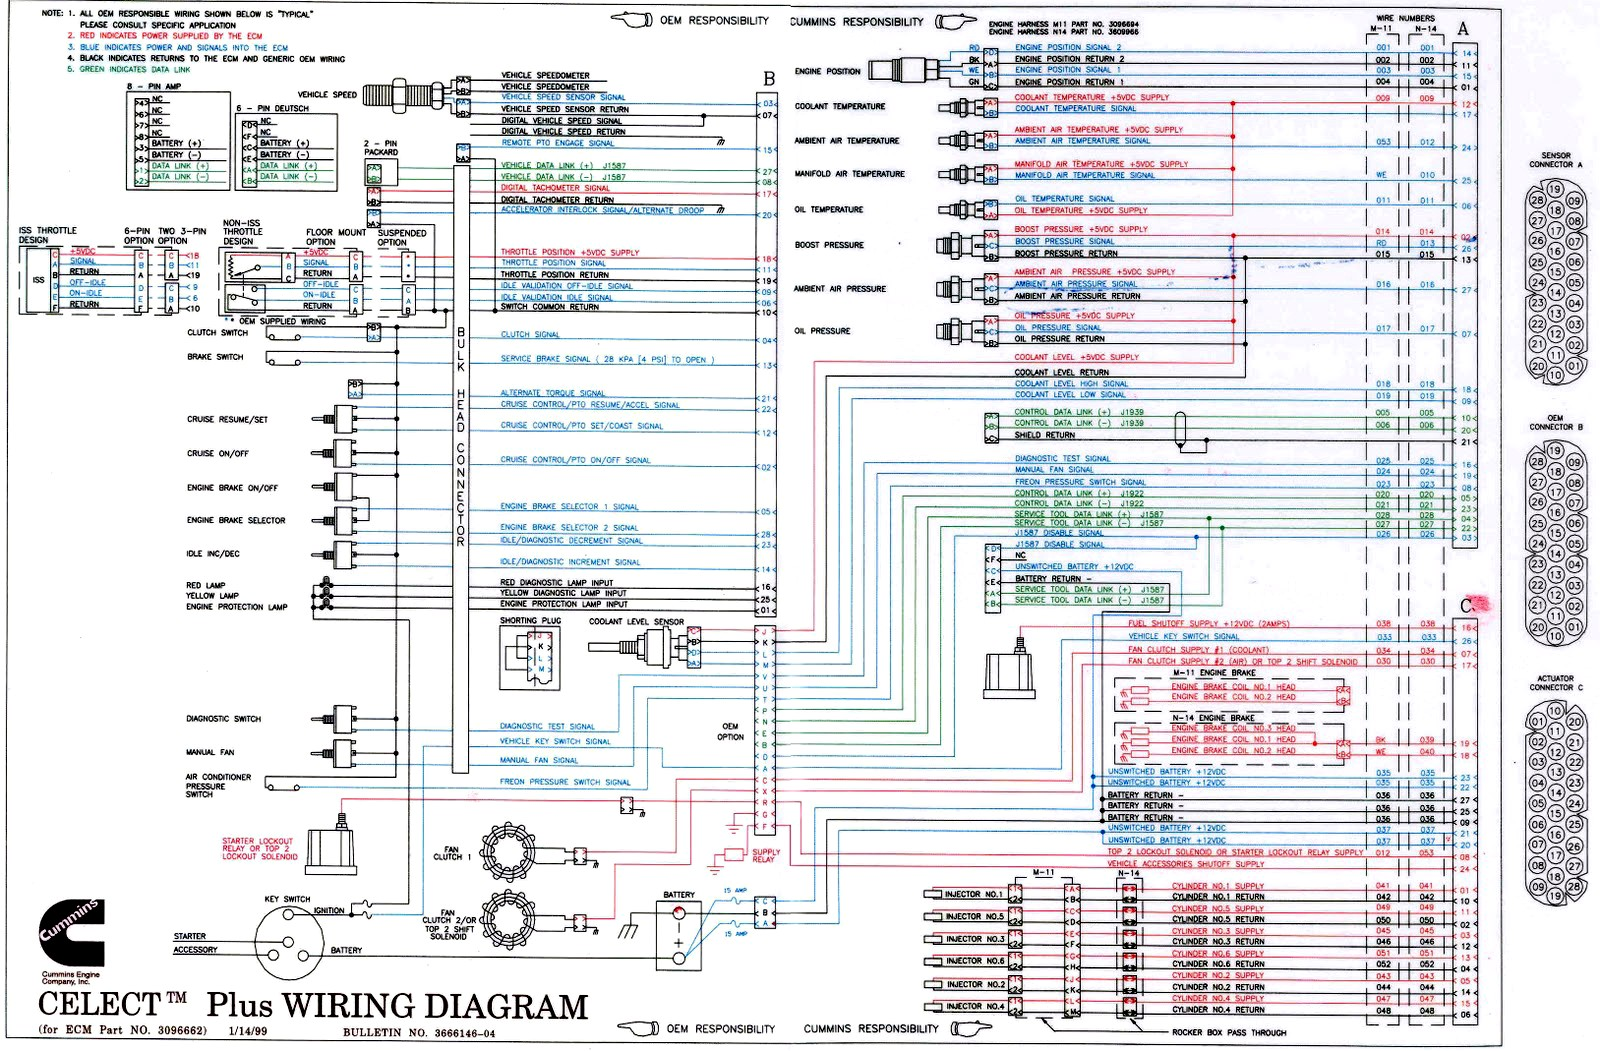 Celect+Plus+Wiring+Diagram+Cummins wiring diagram 1991 kenworth t600 readingrat net kenworth wiring schematics at bakdesigns.co